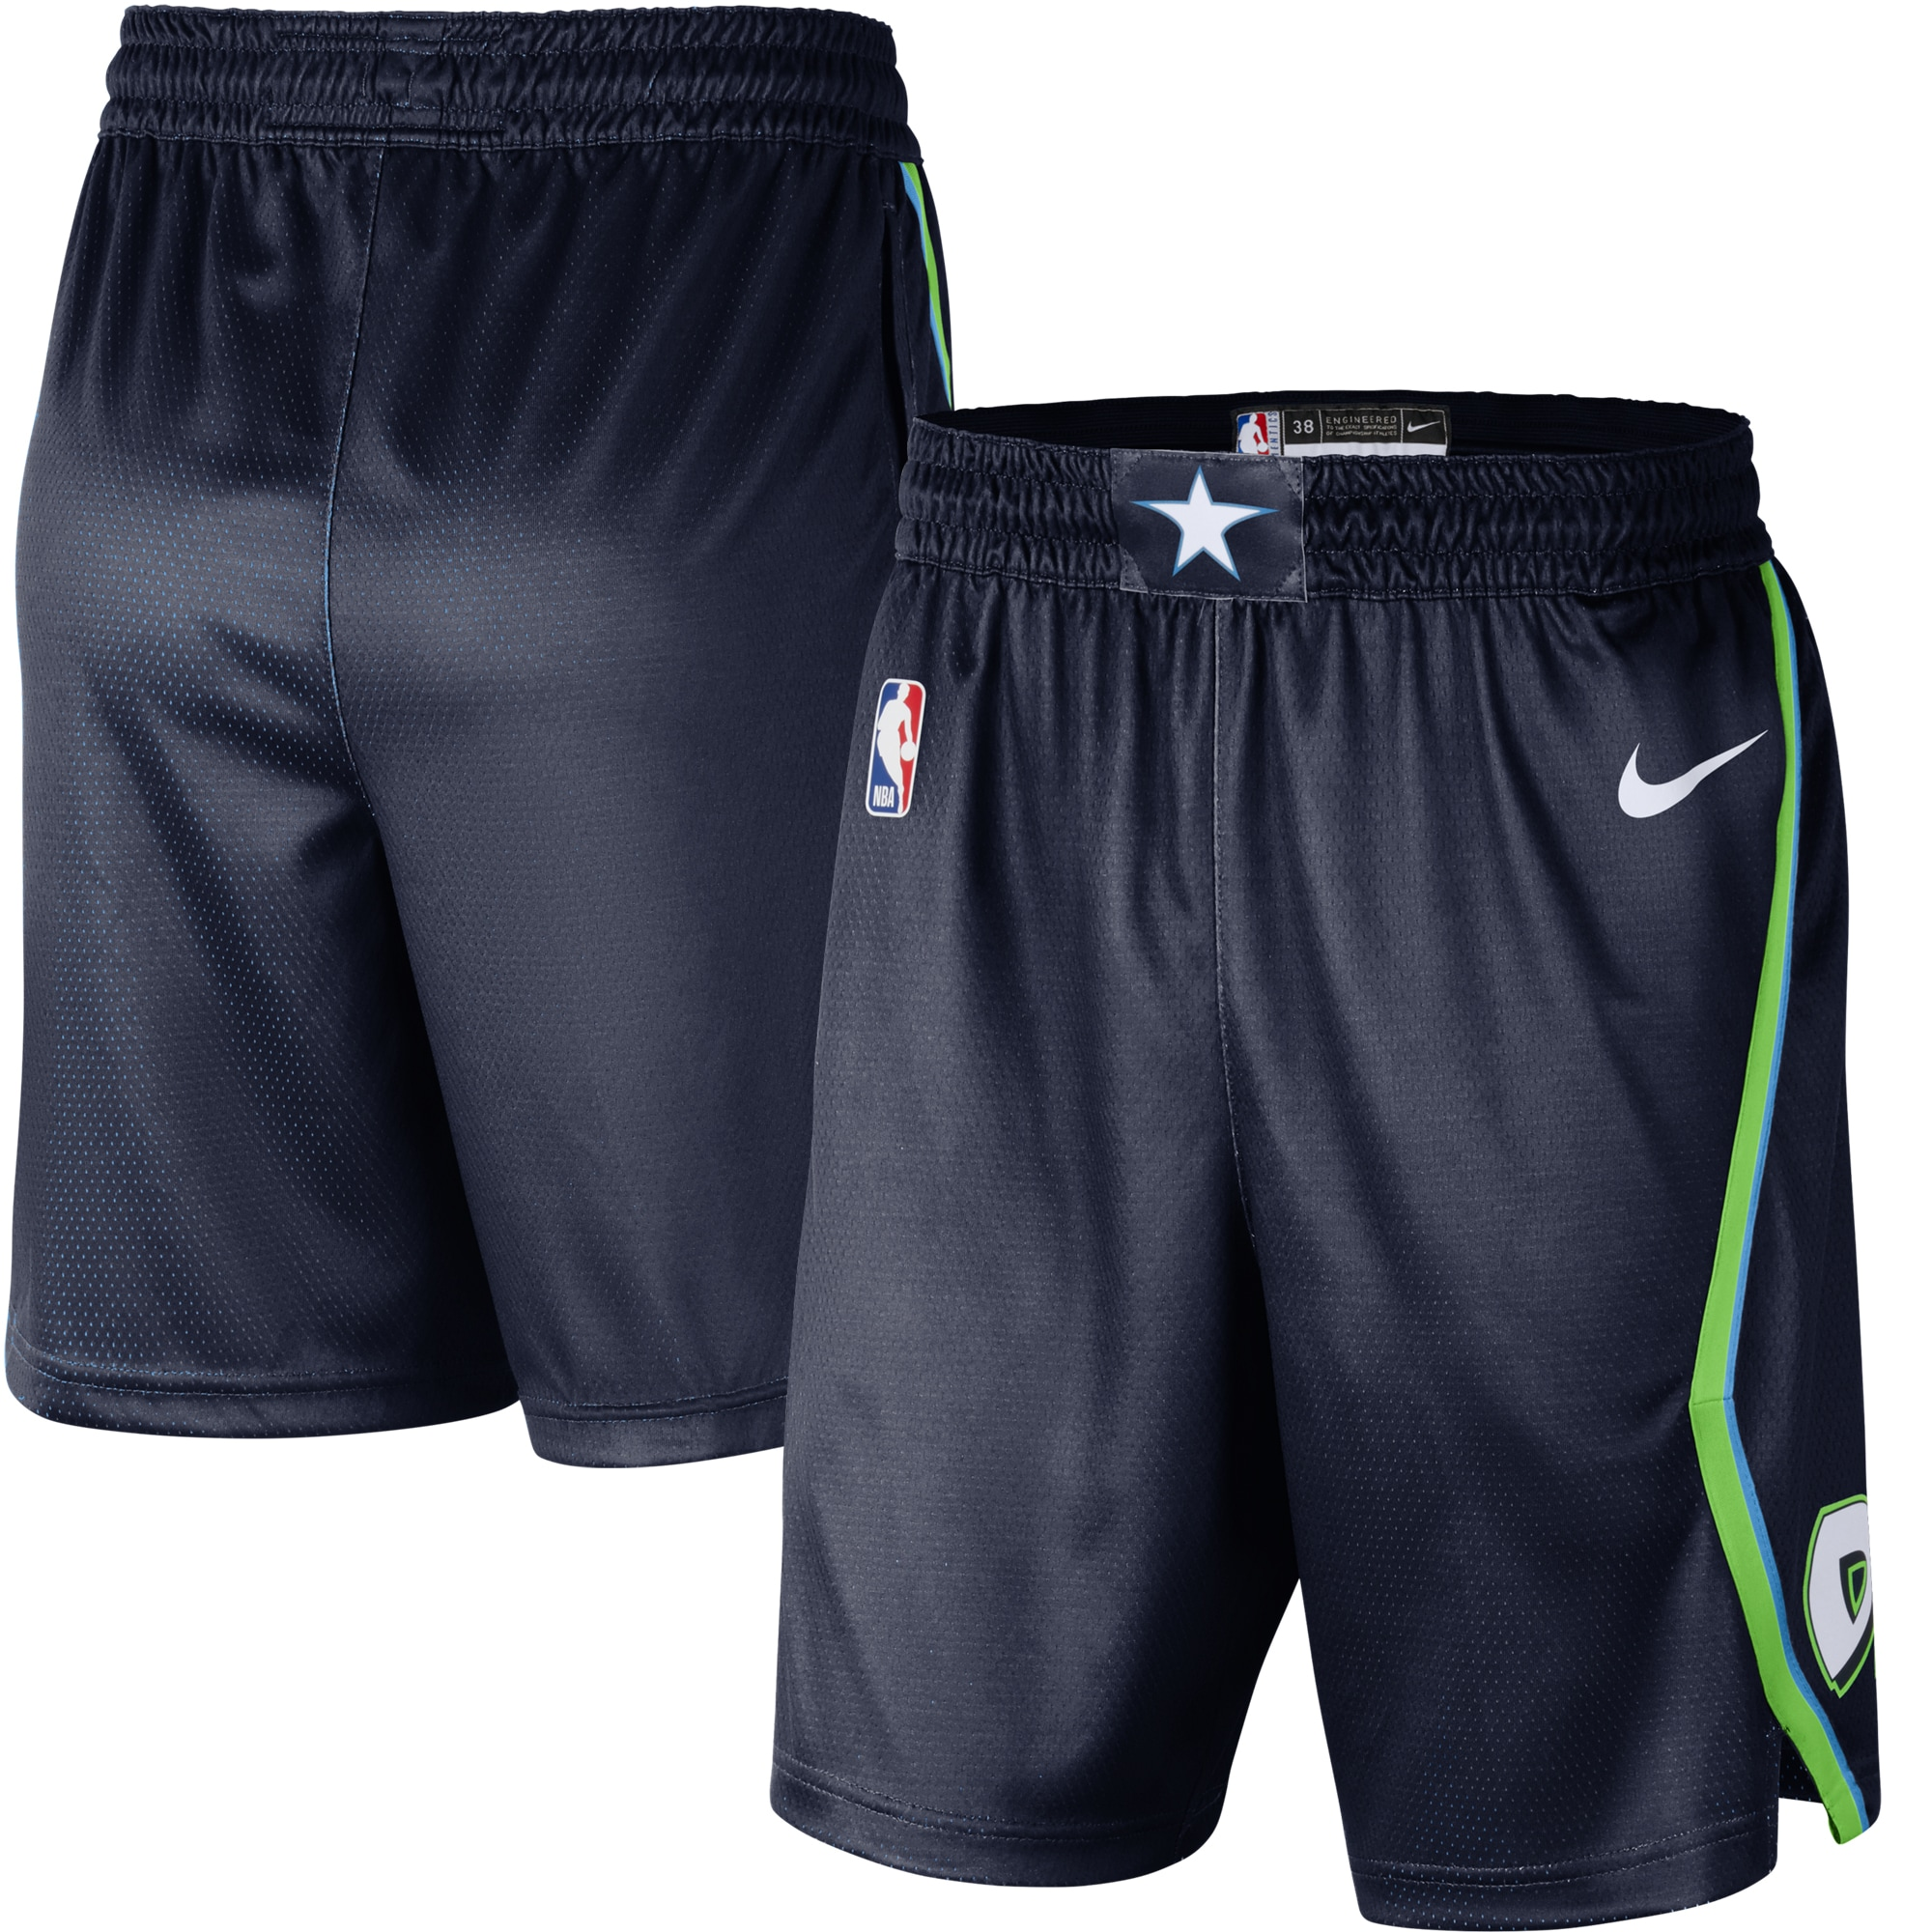 Dallas Mavericks Nike 2019/20 City Edition Swingman Shorts - Navy